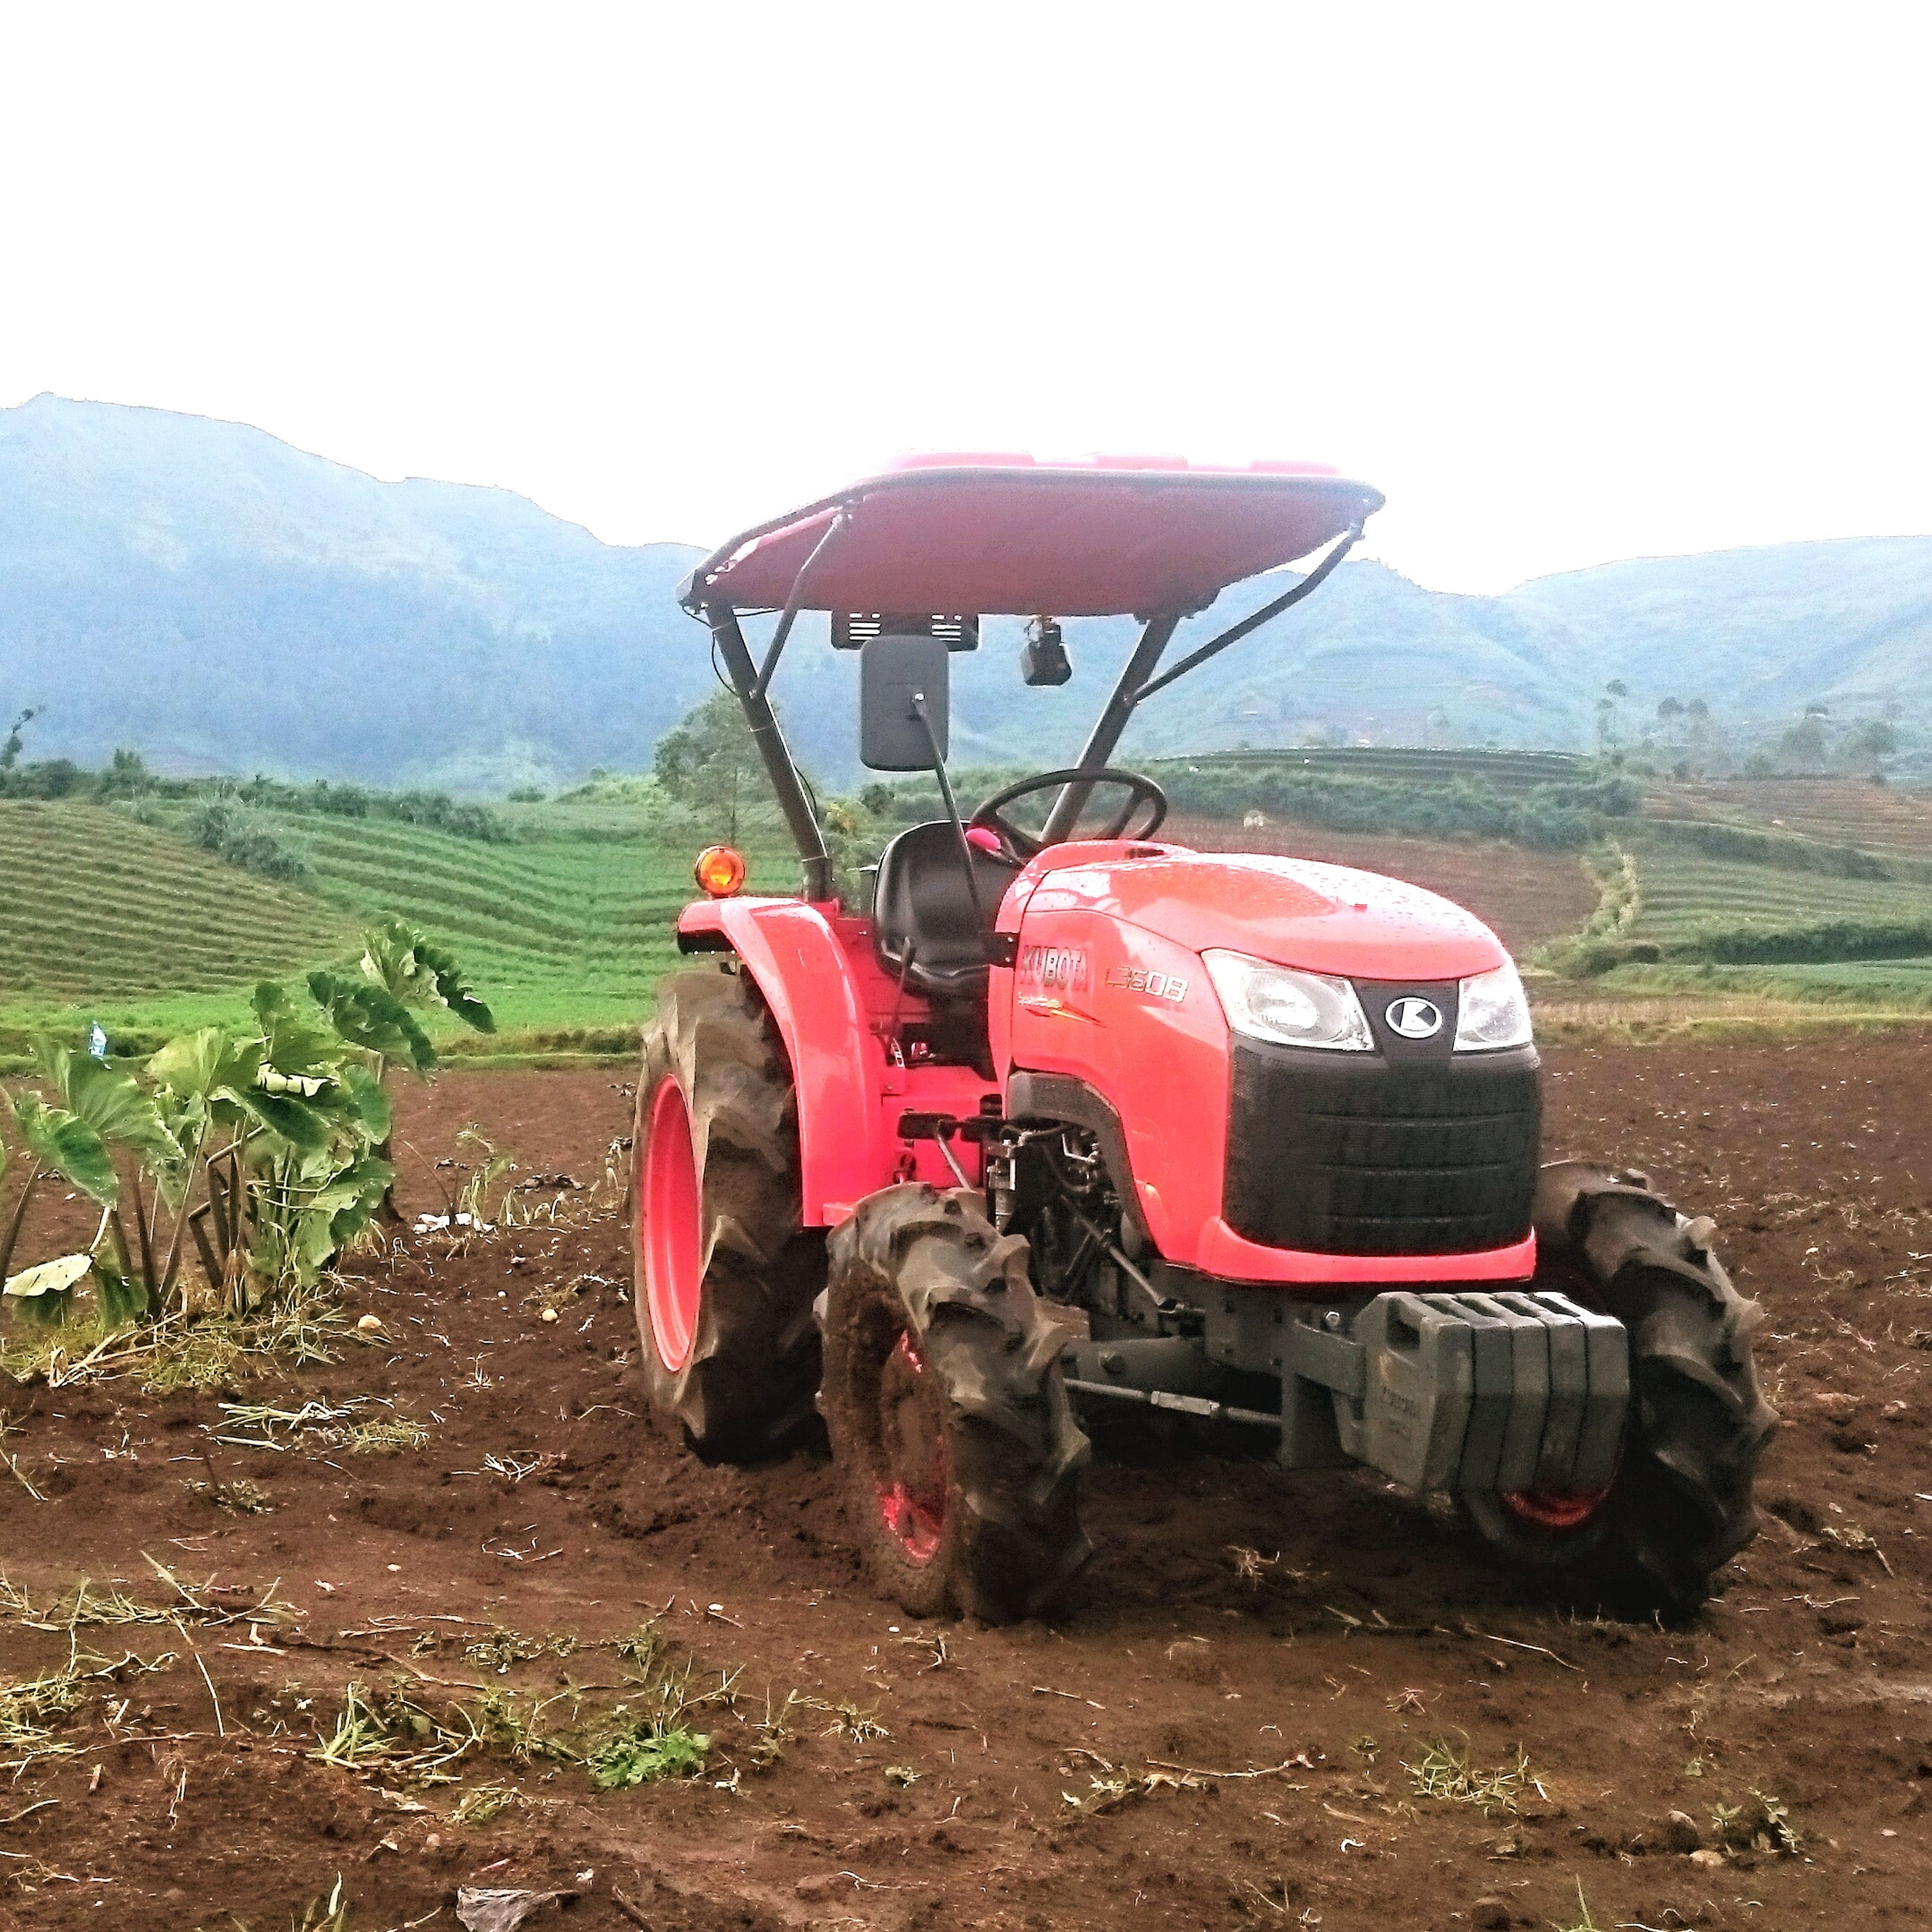 field, landscape, rural scene, land vehicle, agriculture, red, transportation, mode of transport, farm, mountain, grass, clear sky, car, tractor, nature, sky, day, outdoors, agricultural machinery, travel